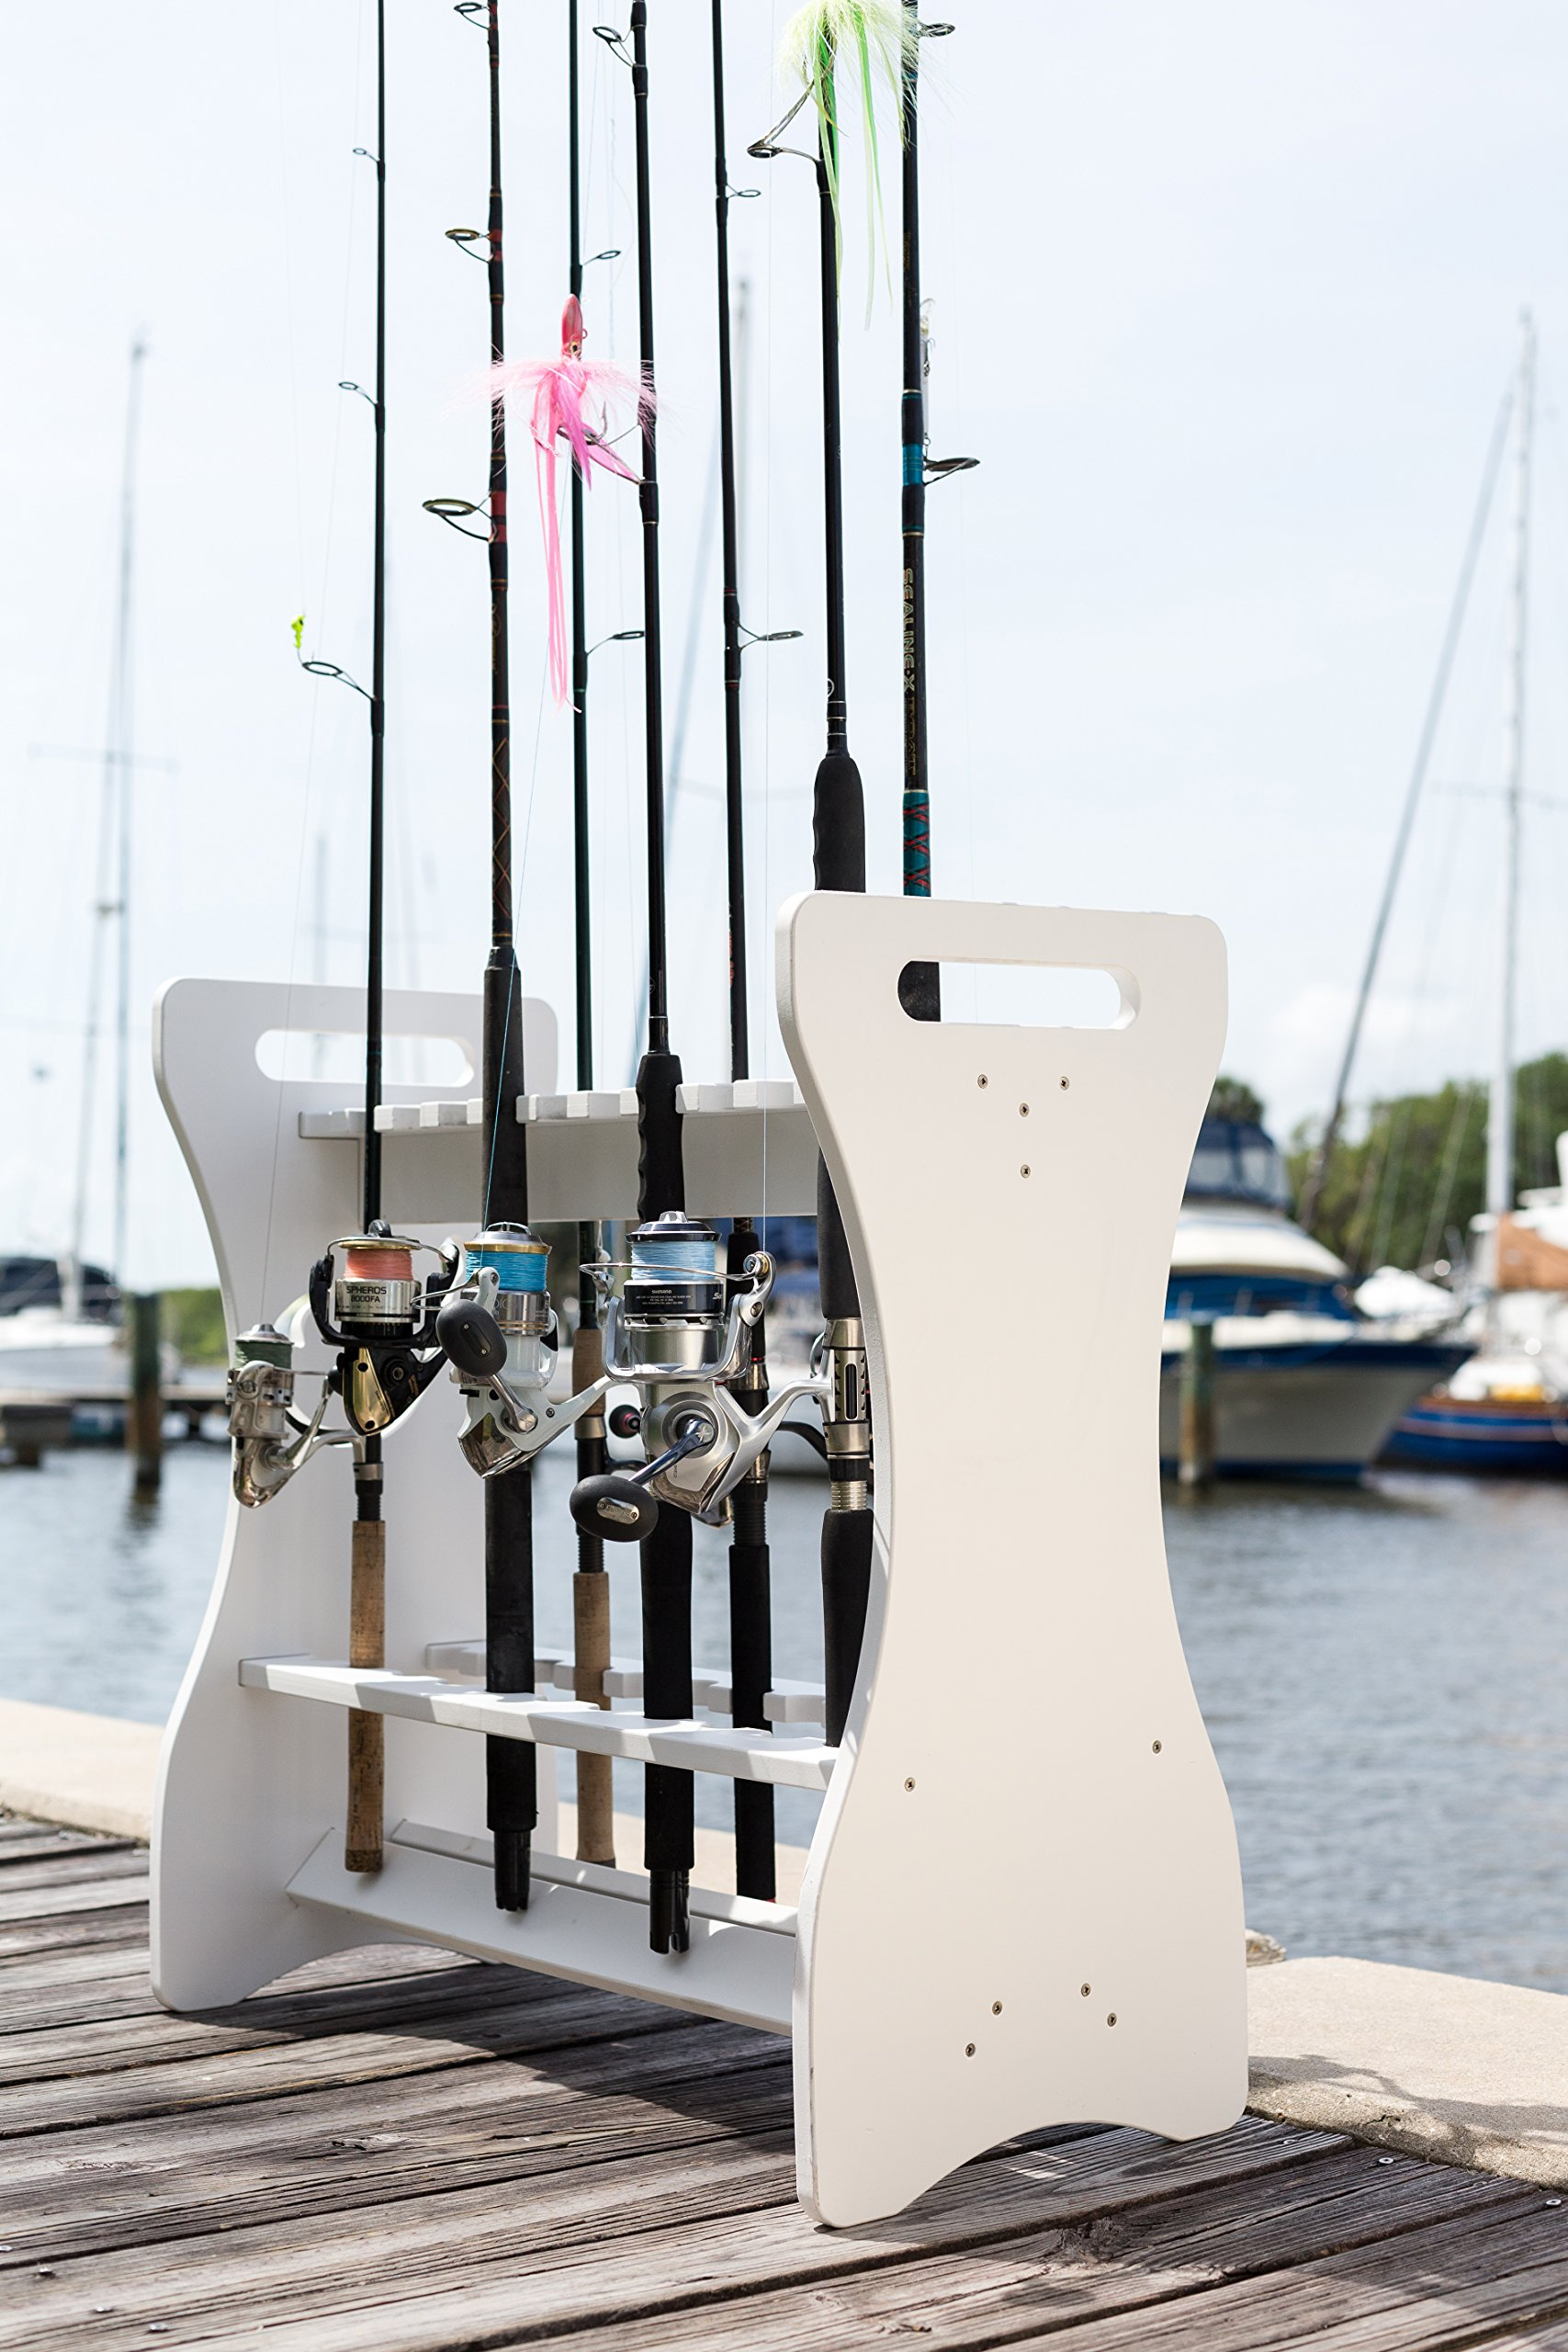 Fishing Rod Rack - Classic White - Store and Organize up to 24 Fishing Rods and Reels by Sea Racks